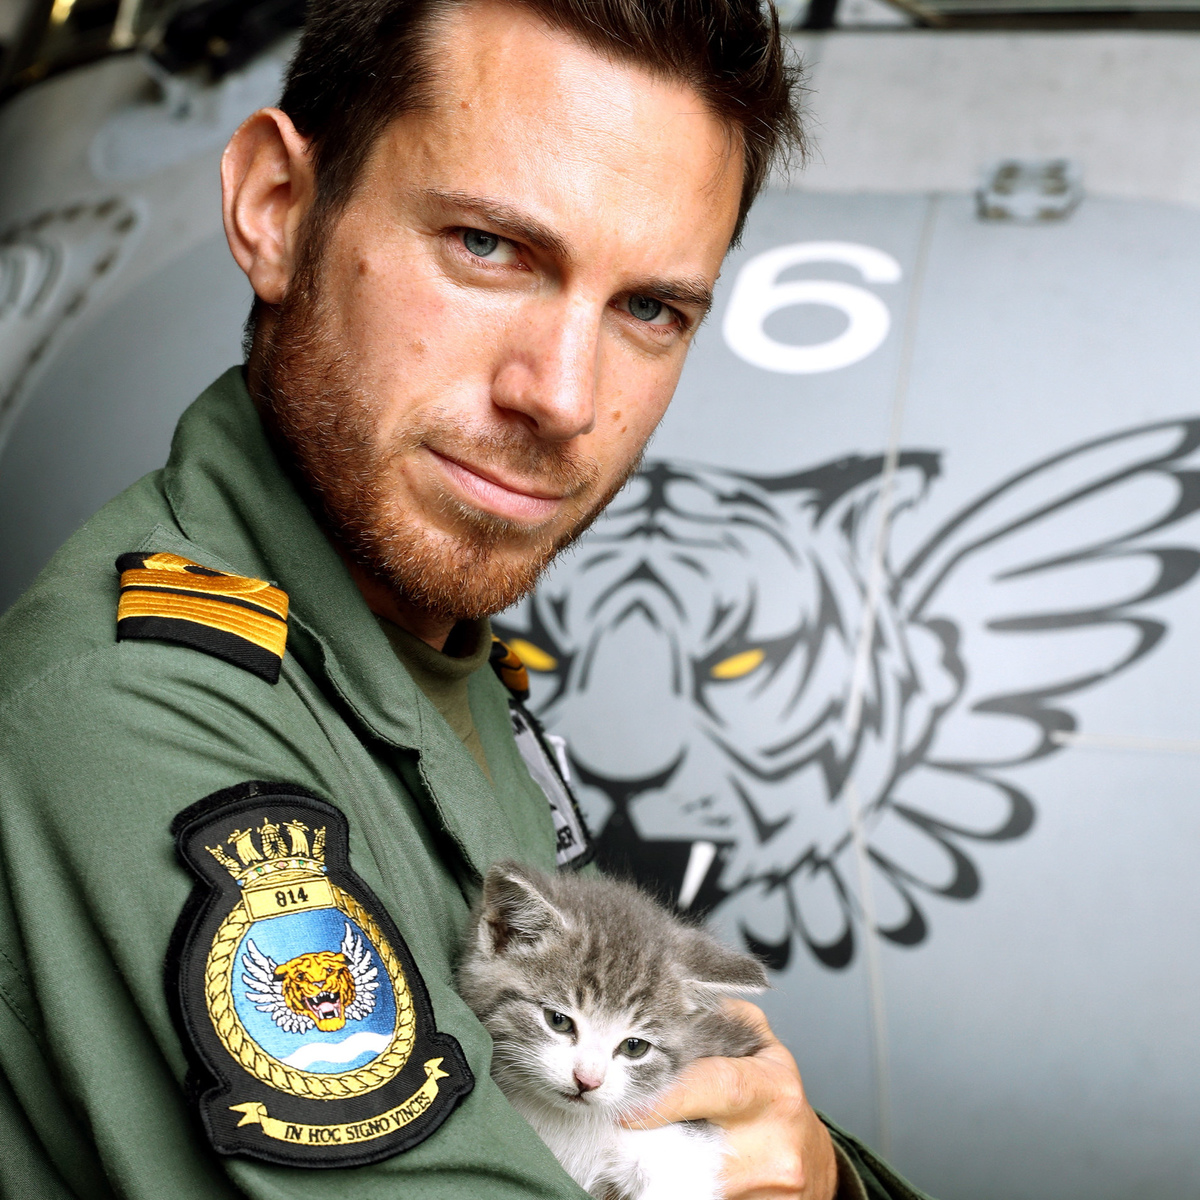 Internet Falls In Love With Pilot Who Saved Kitten After 300 Mile Ordeal SWNS LUCKY KITTEN 02